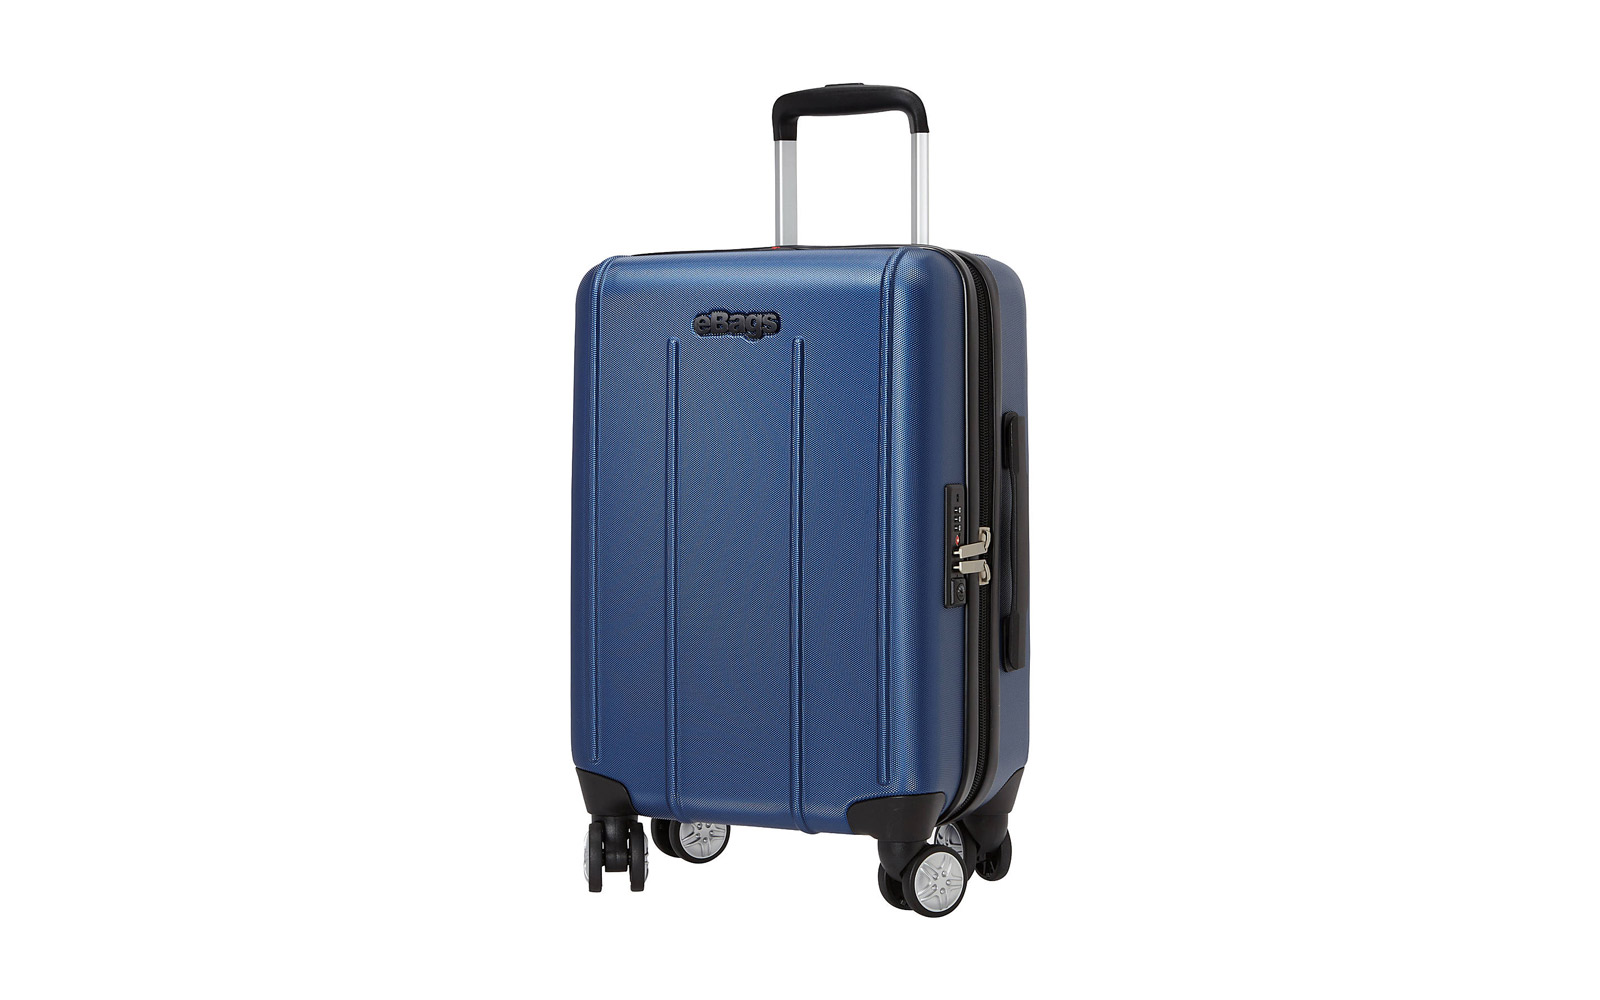 76c475704e A Carry-on Luggage Size Guide by Airline